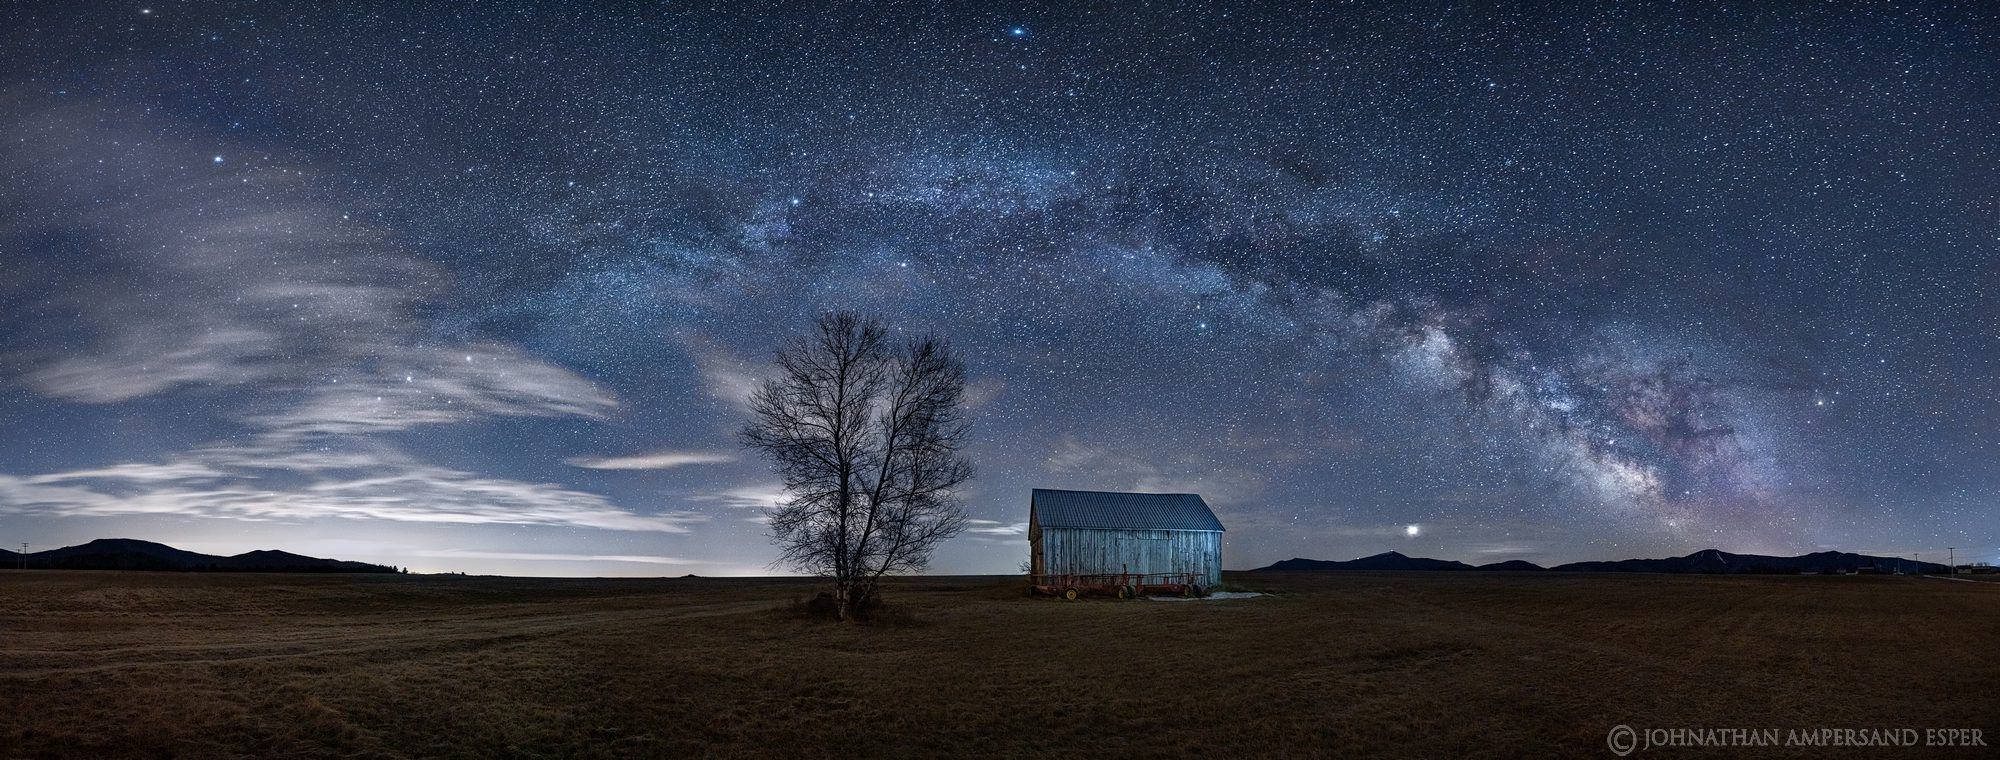 Norman Ridge,Norman Ridge Rd,Norman Ridge barn,old barn,barn,Vermontville,Milky Way,night,stars,night photography,180 degree panorama,panorama,2020,March,winter,Whiteface Mt,Whiteface,, photo